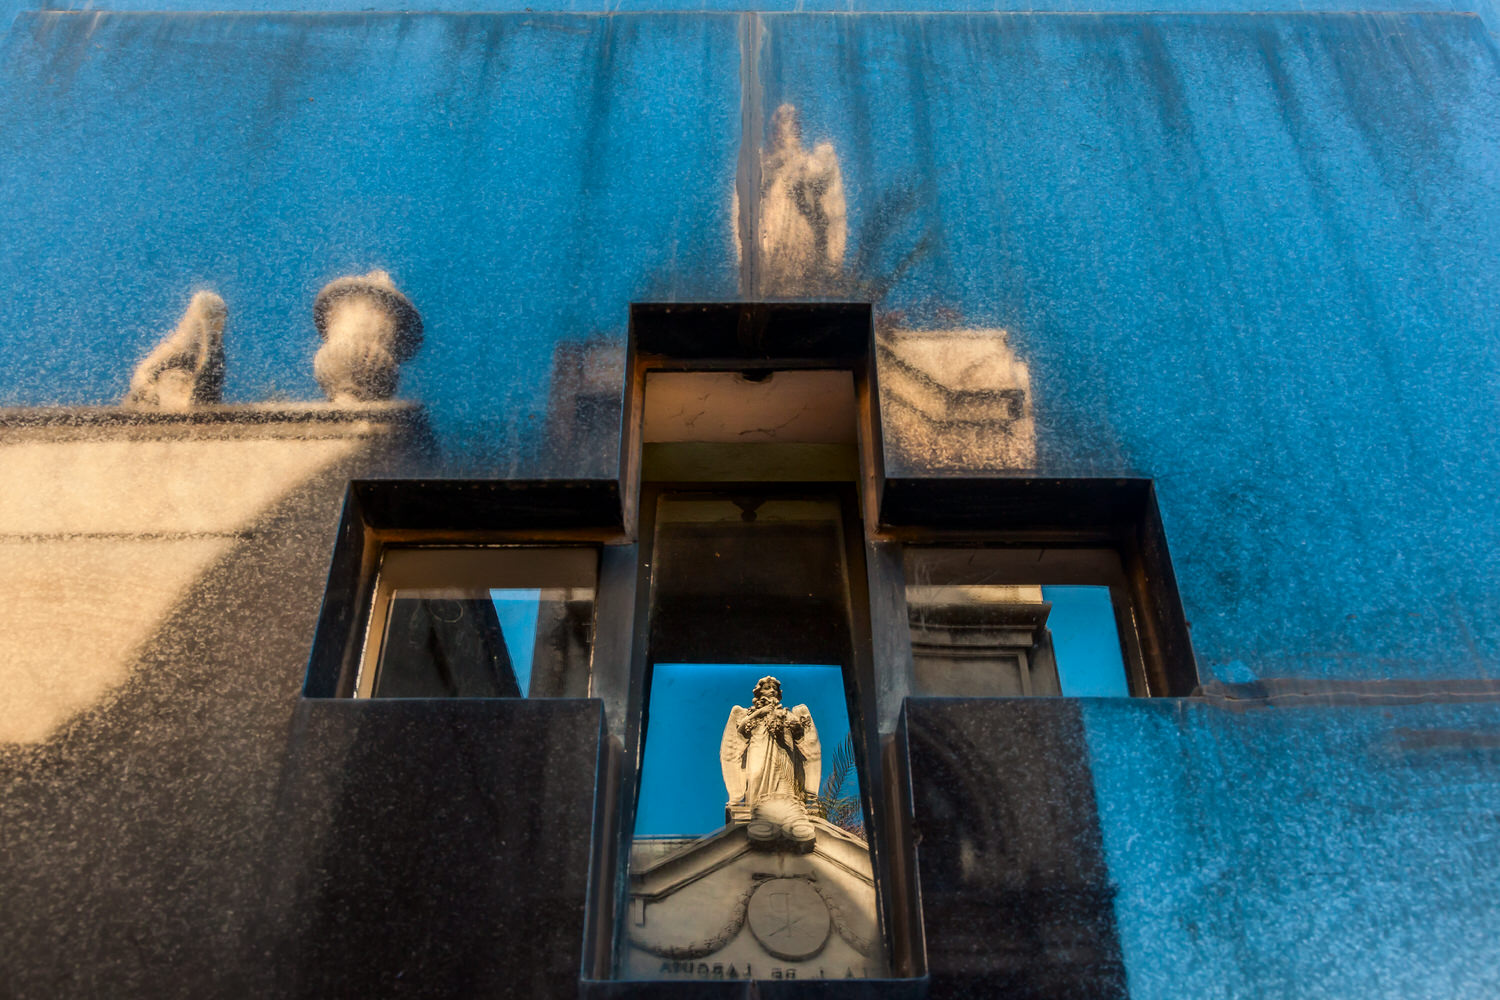 A dynamic view of a    statue reflected    within and above a    crucifix    at the magnificent    La Recoleta Cemetery    in    Buenos Aires, Argentina   .